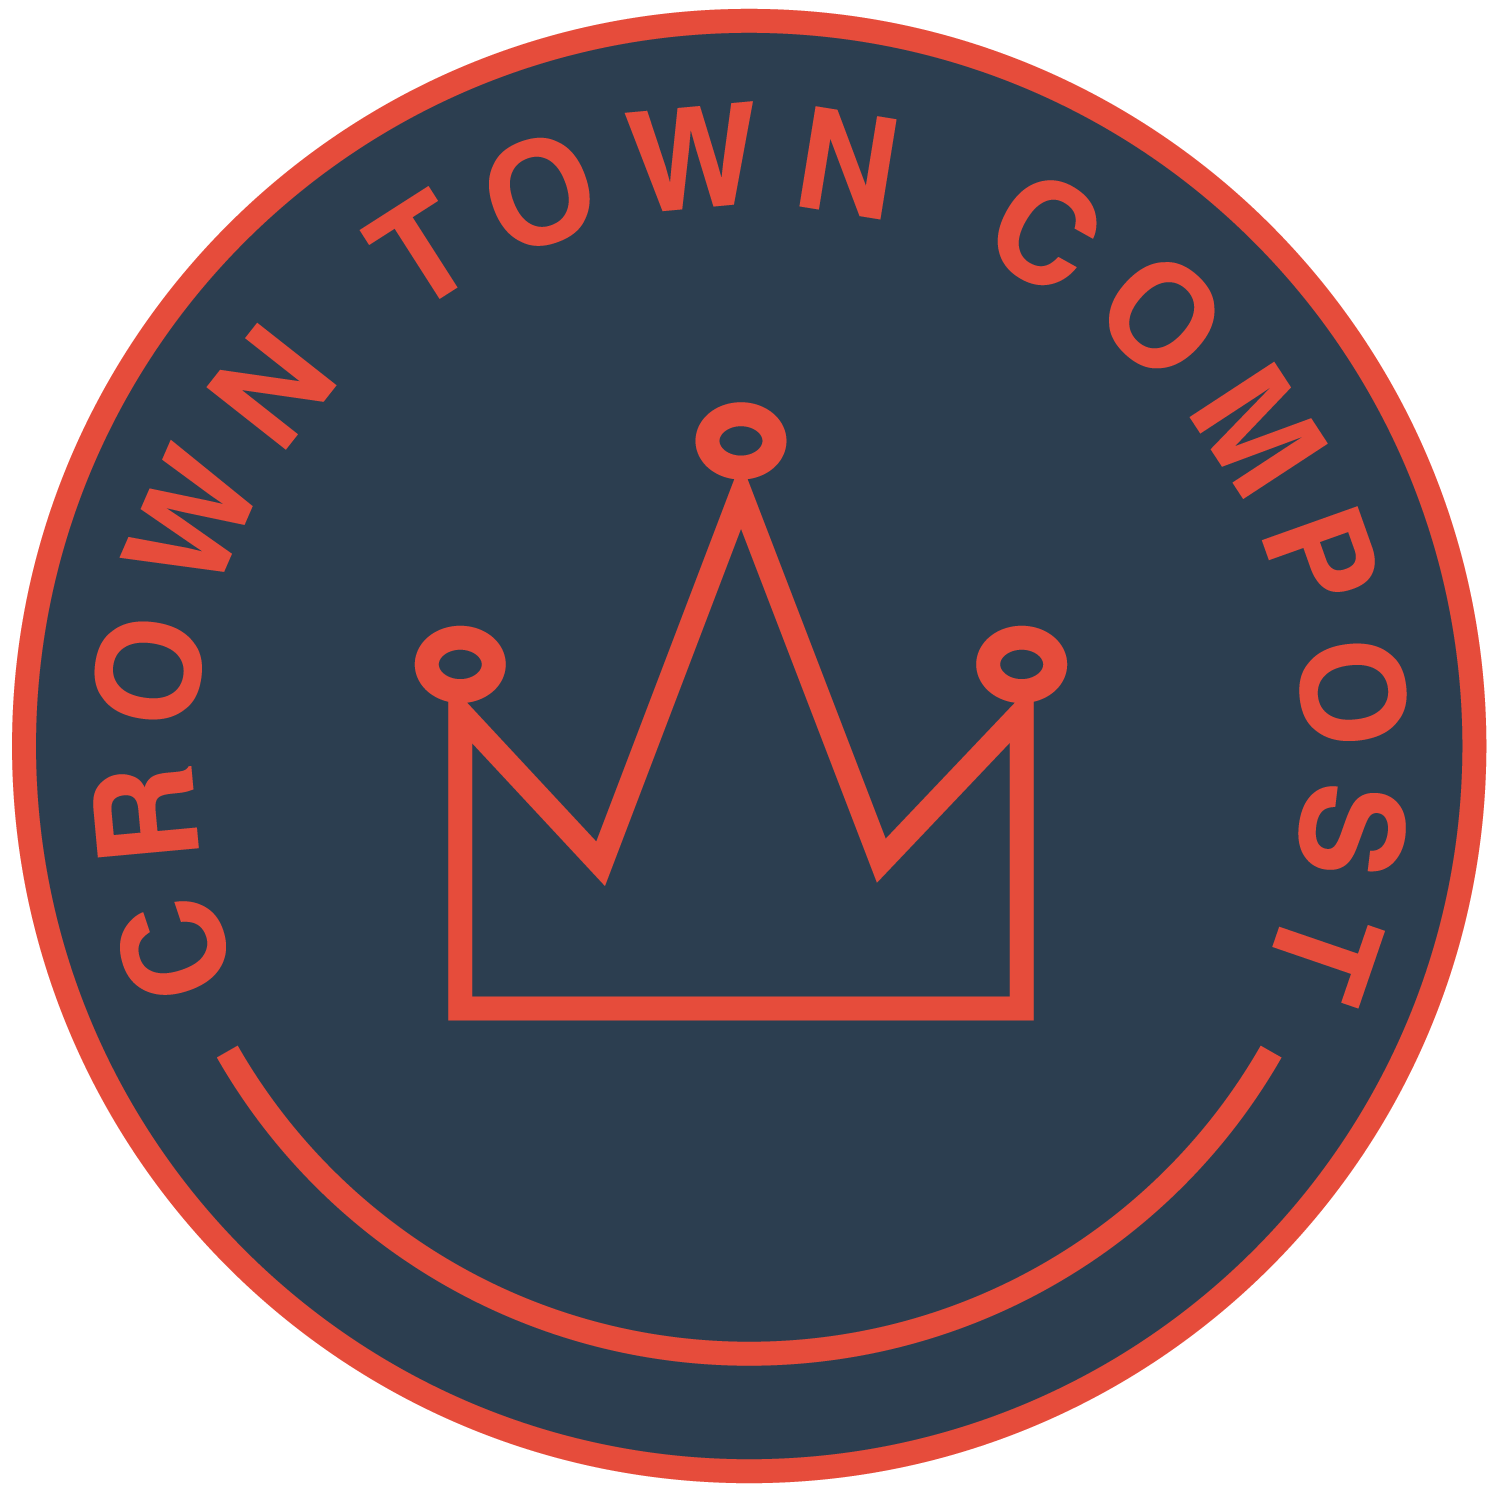 Crown Town Compost